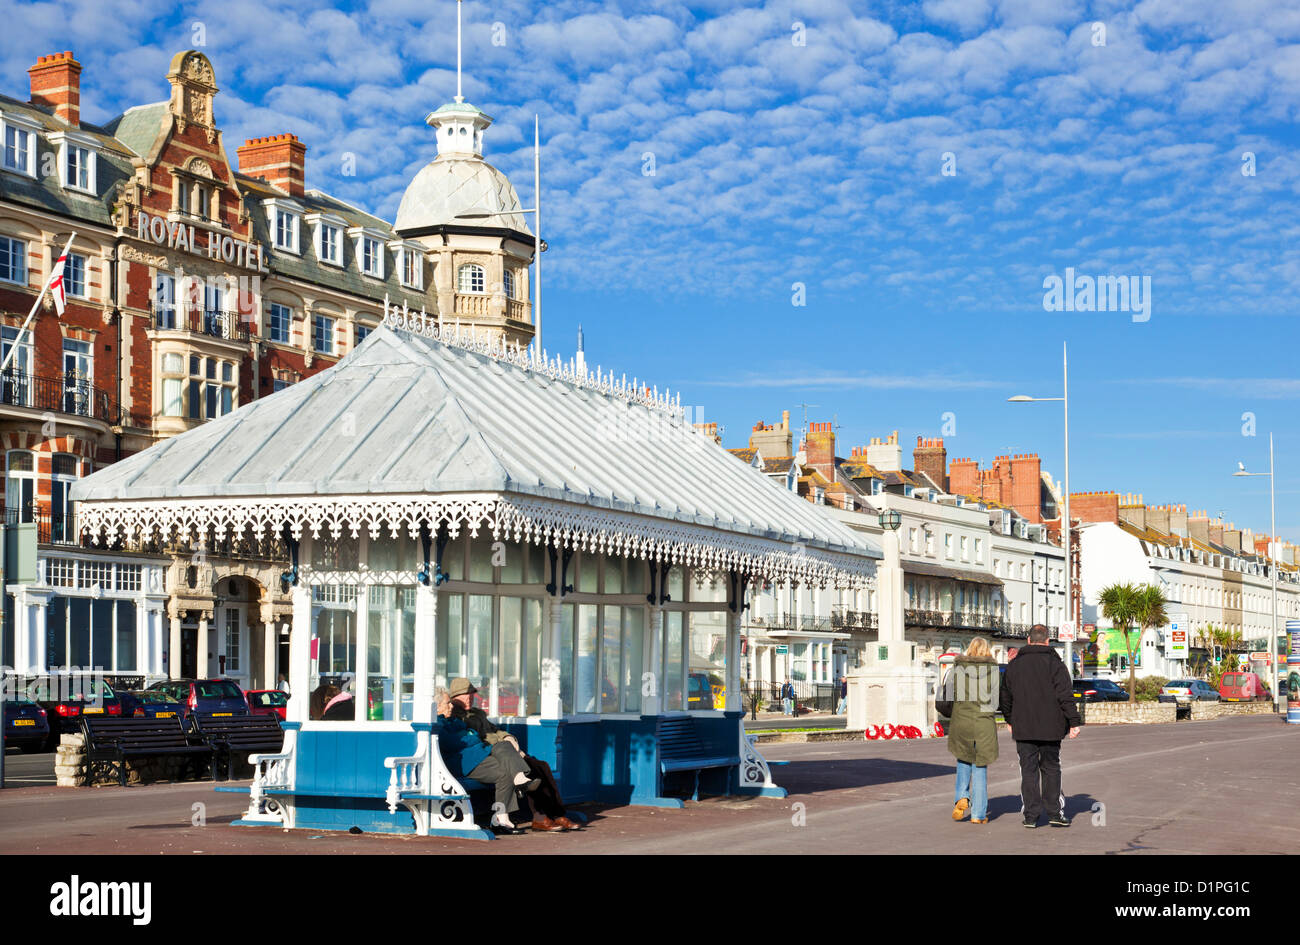 Restored Victorian listed Shelters on the Promenade seafront Georgian Esplanade at Weymouth Dorset England UK GB - Stock Image